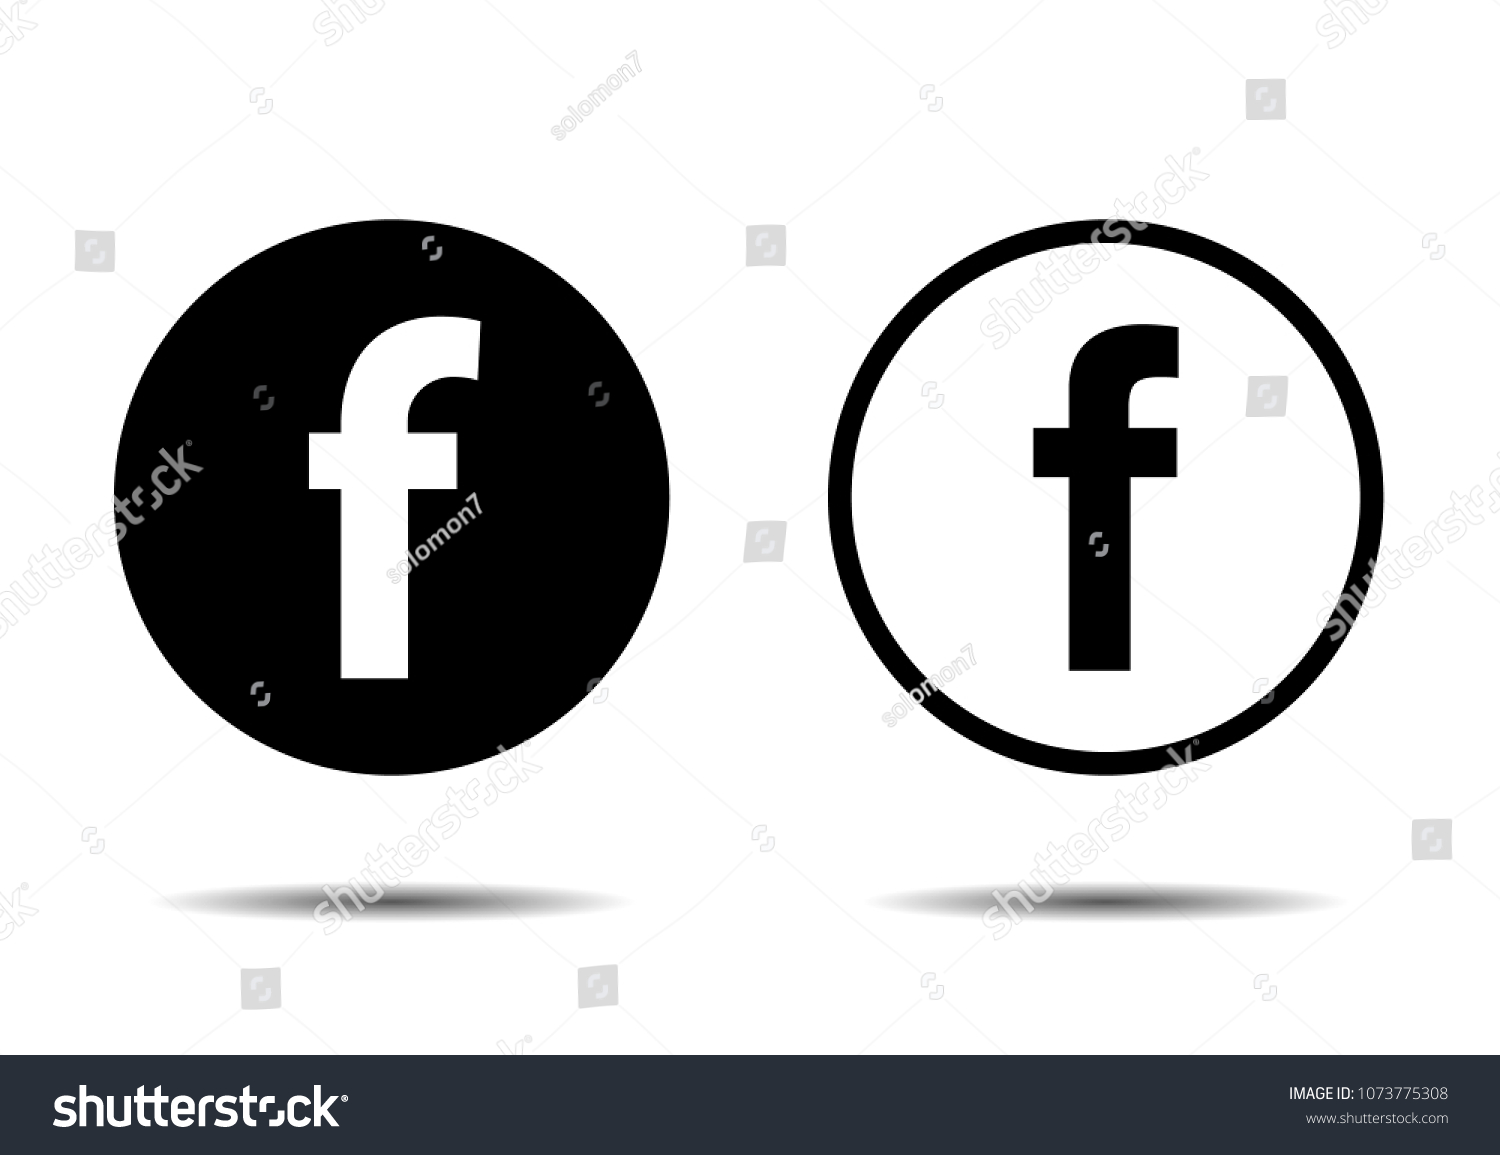 Set for letter F. Flat web icon or sign isolated on white background. #1073775308